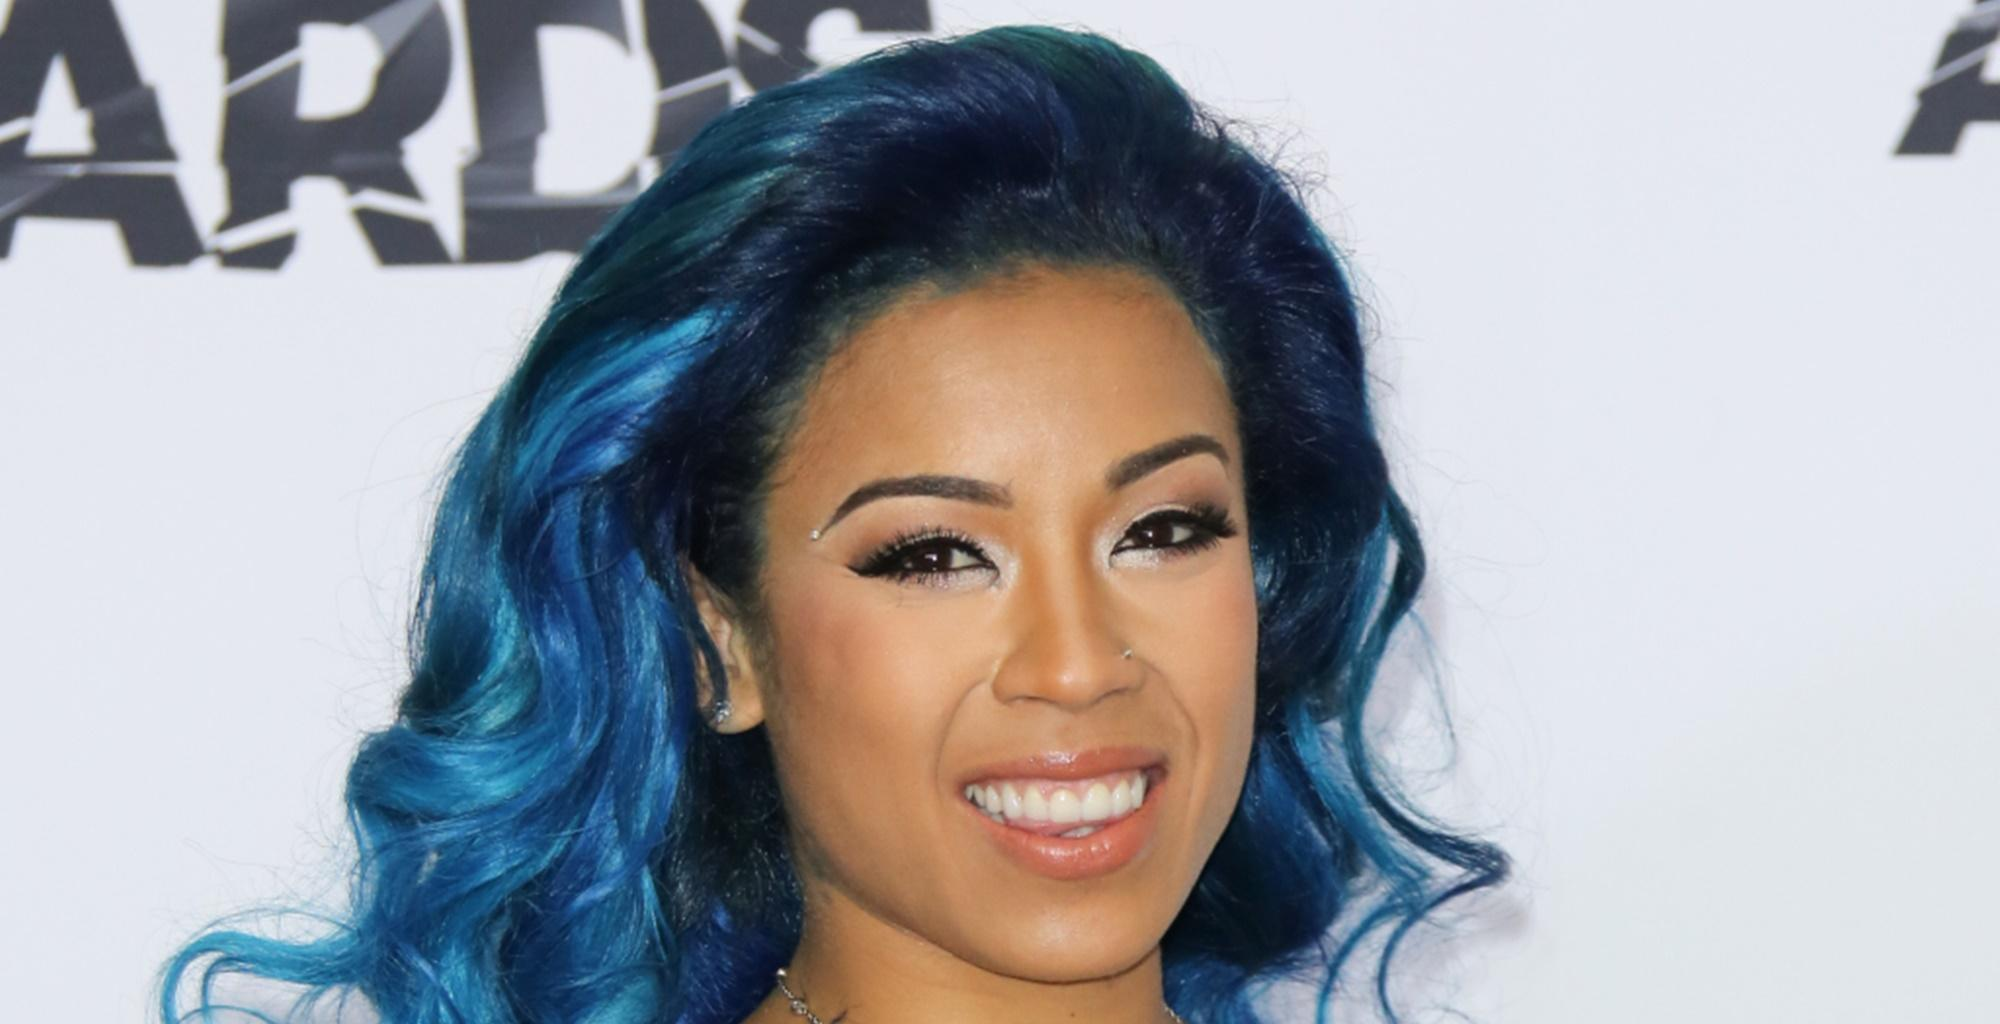 Keyshia Cole Returns To Social Media After Giving Birth To Her Second Child, To Share This Breathtaking Picture -- Fans Say Niko Khale's Lady Looks Stunning